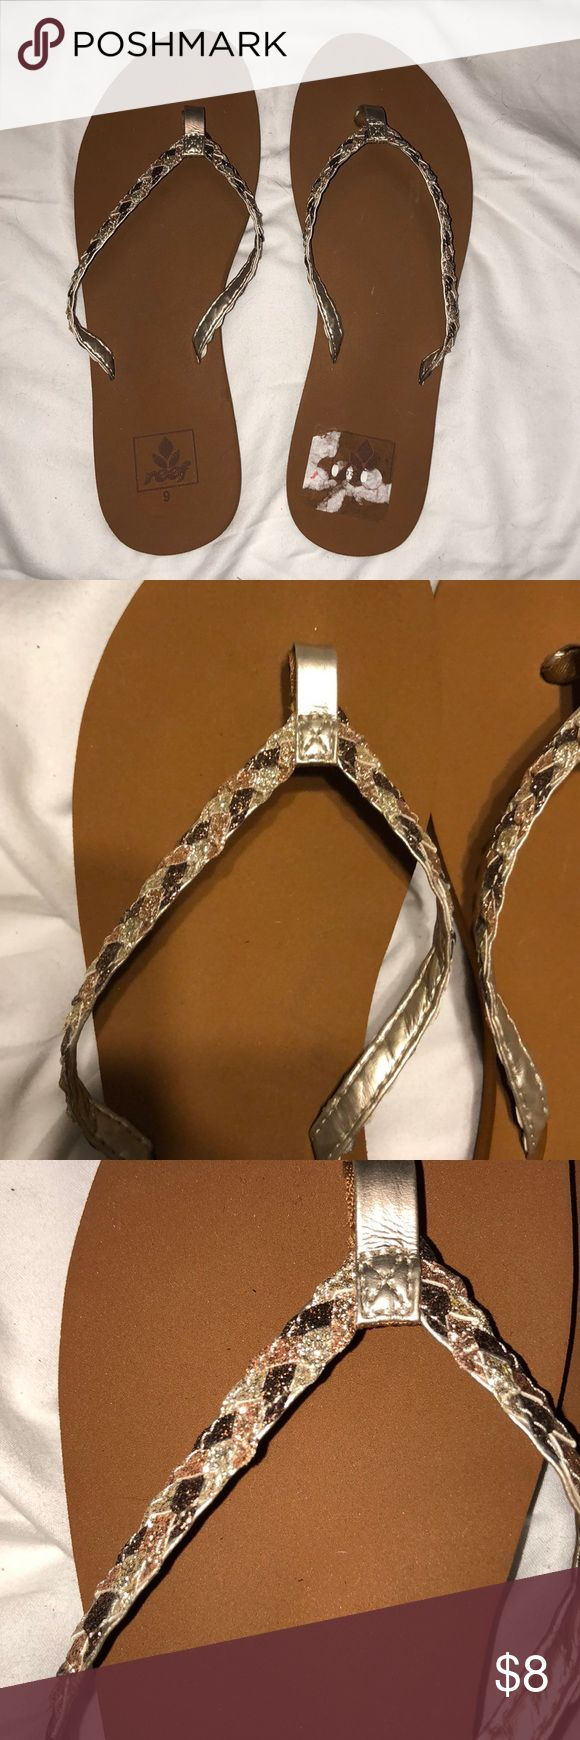 Flip flops Size 9 brown Reef flip flop with sparkly braided band!  Super cute, especially for summer time! Worn once but they were a little too big :-( Also, small problem getting the sticker to come off cleanly on the right flop. Still in great condition! Reef Shoes Sandals